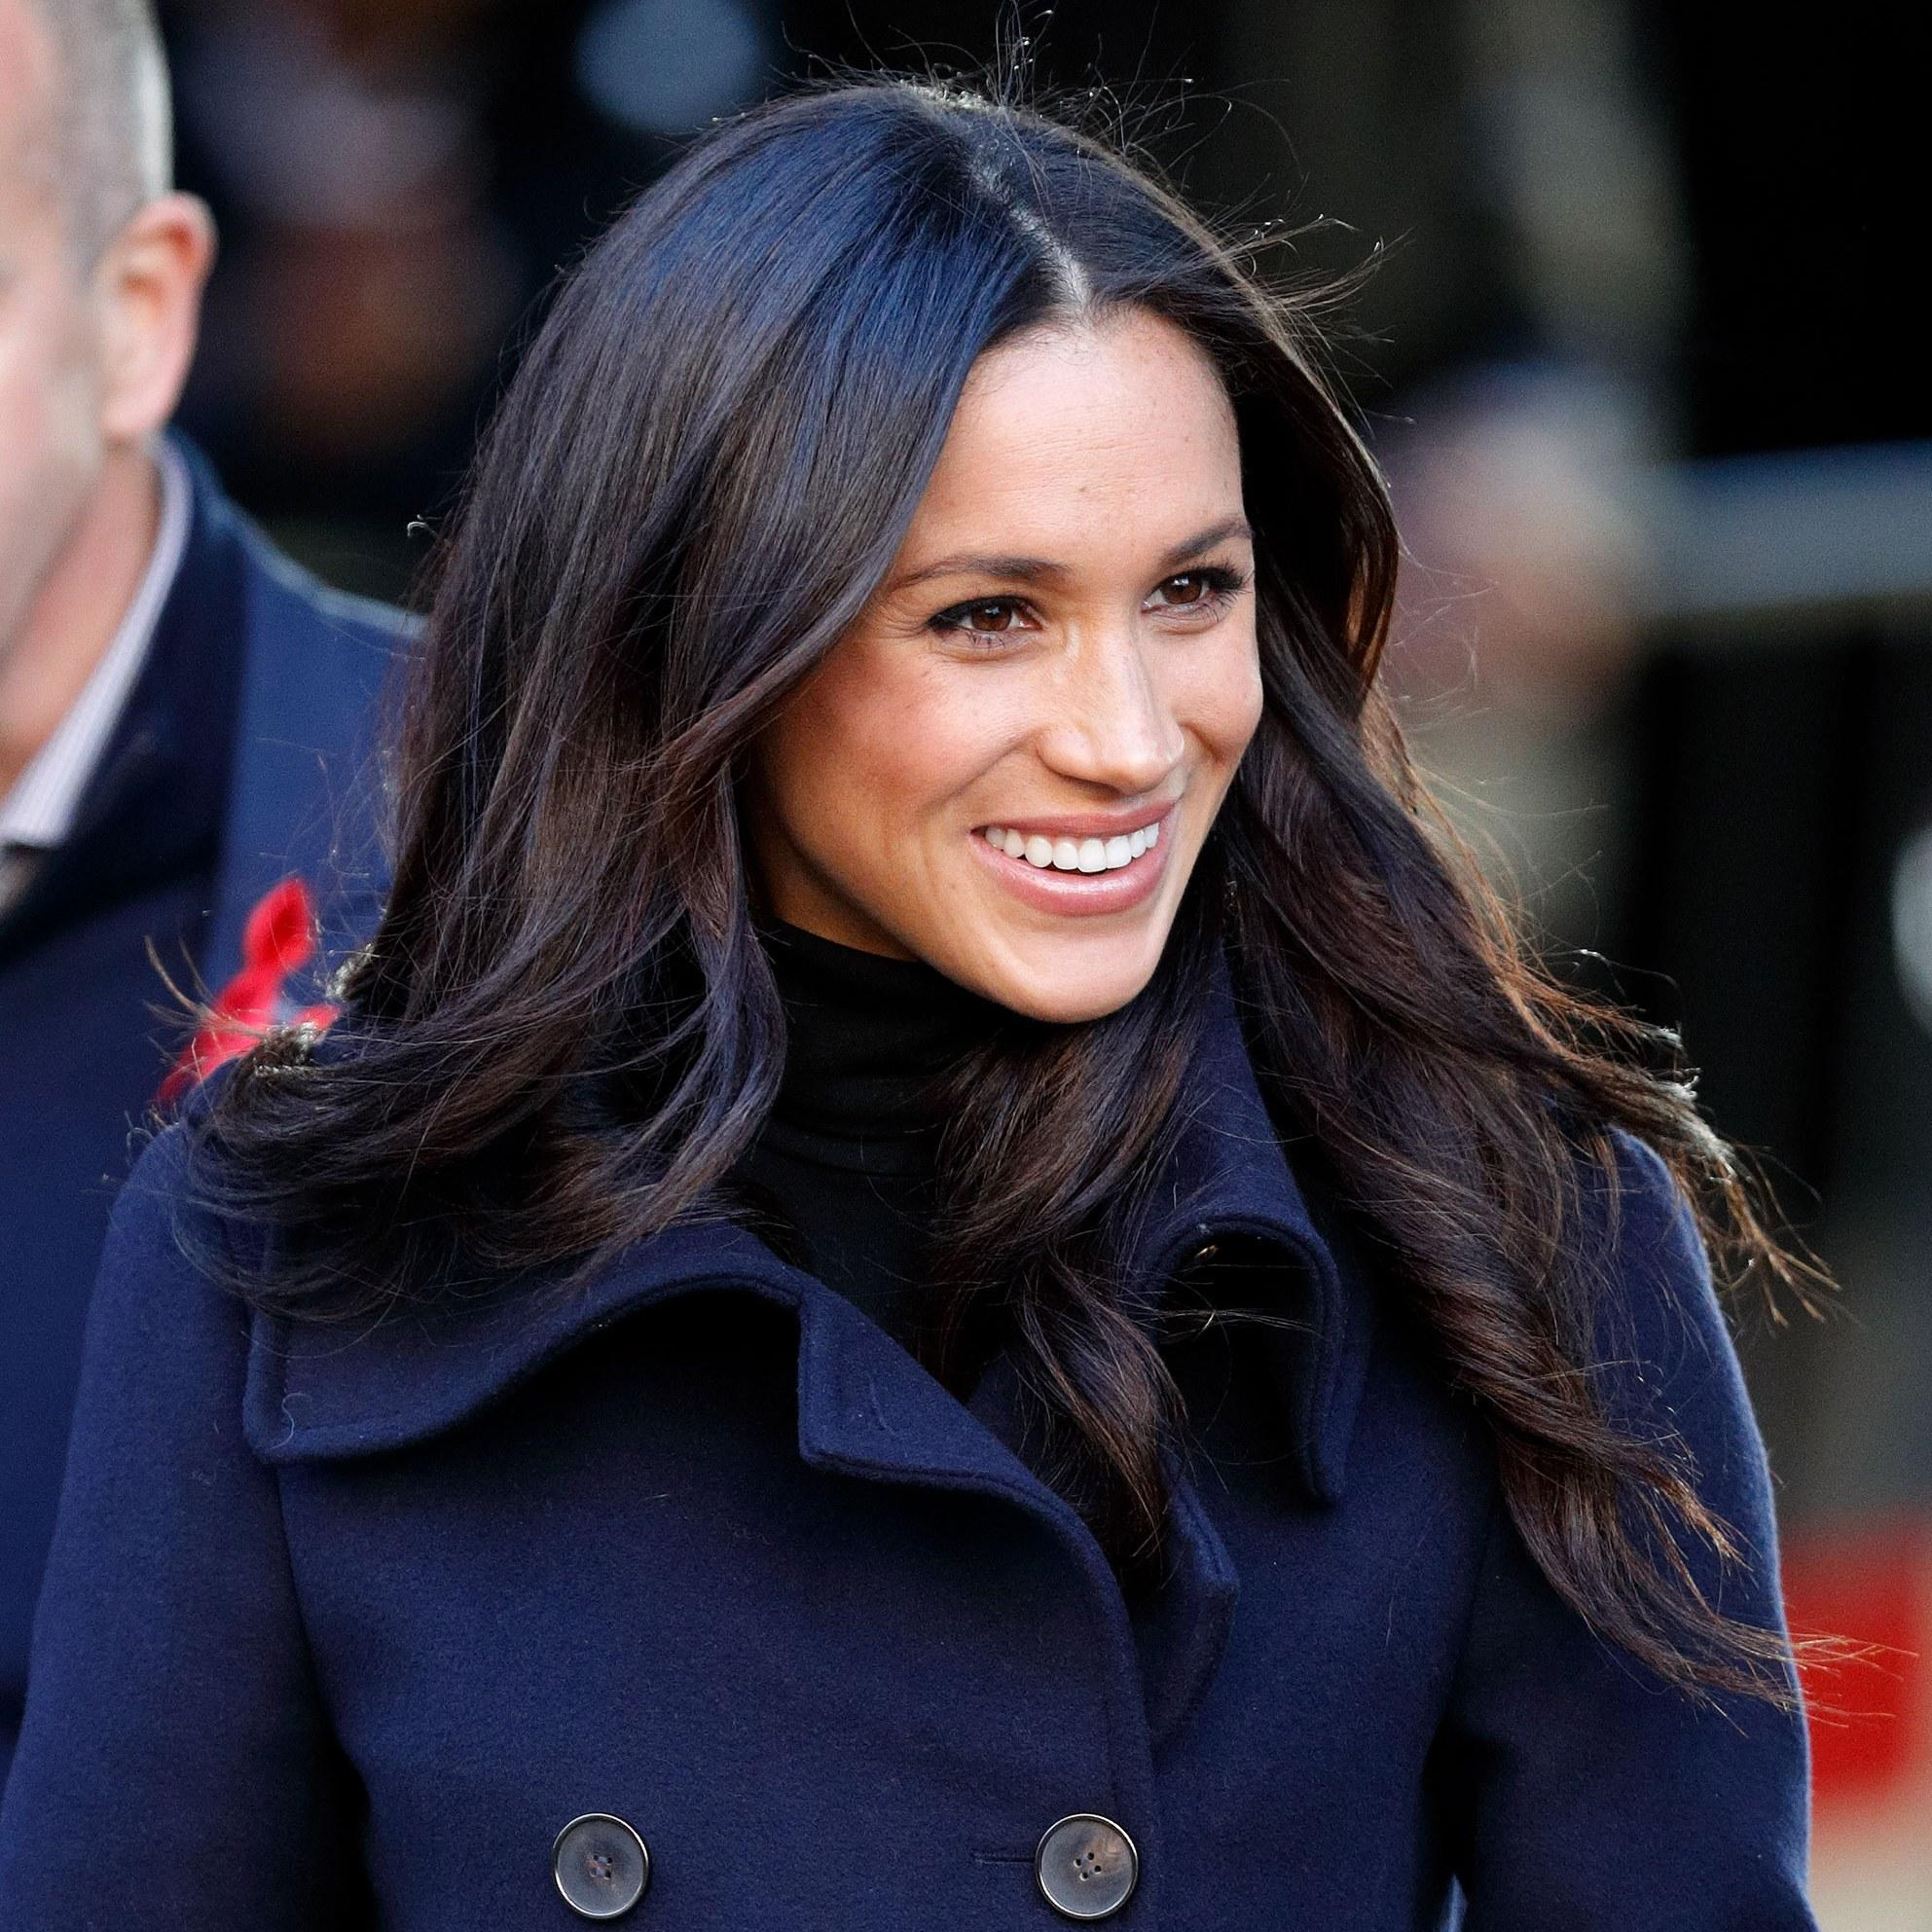 What Will Meghan Markle Do For Her Bachelorette Party?